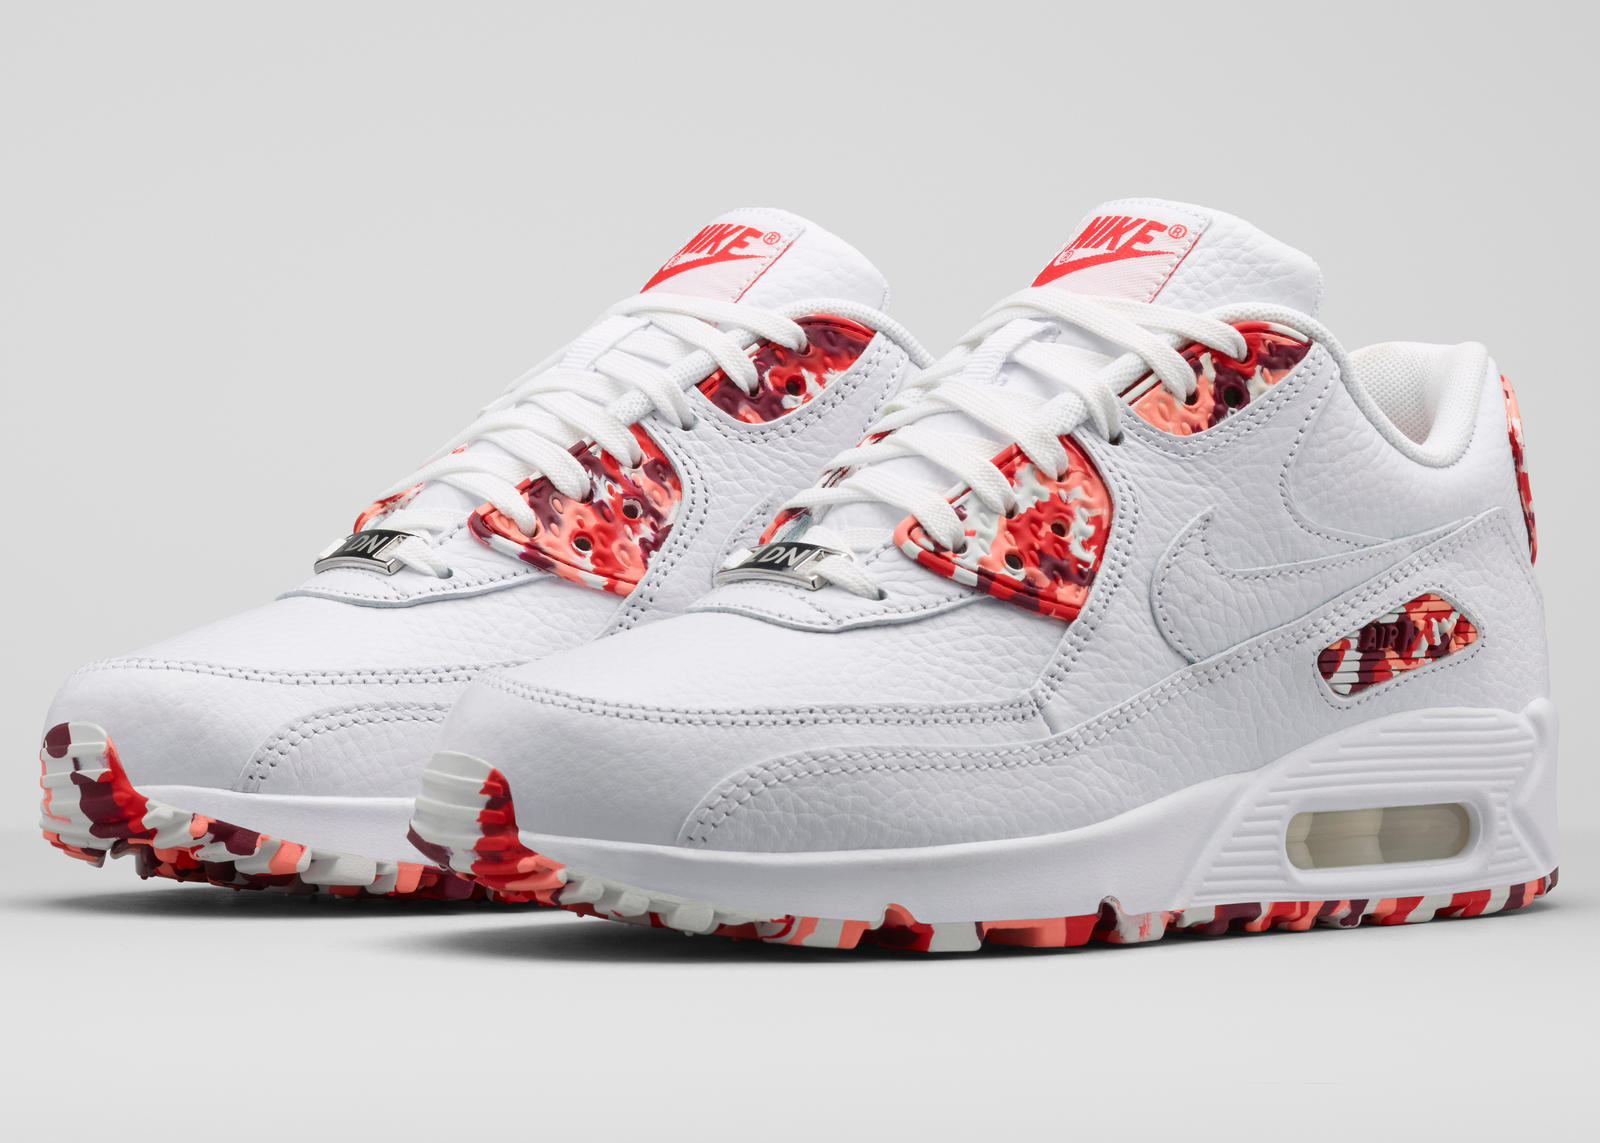 Nike-air-max-90-sweet-city-pack-london-eton-mess-1